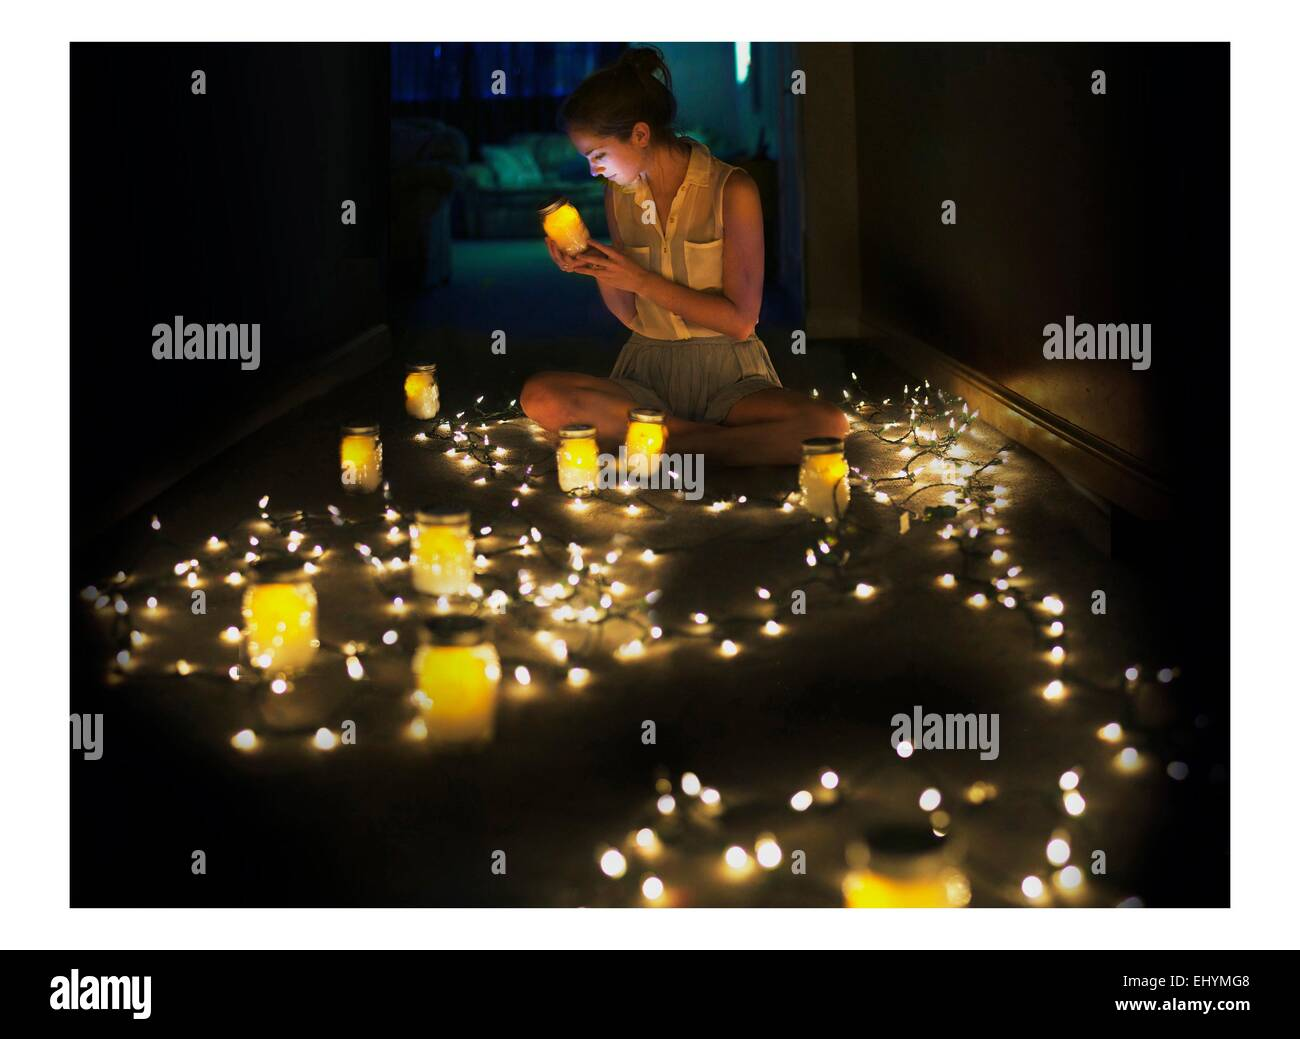 Young woman sitting on floor surrounded by fairy lights and tea lights Stock Photo